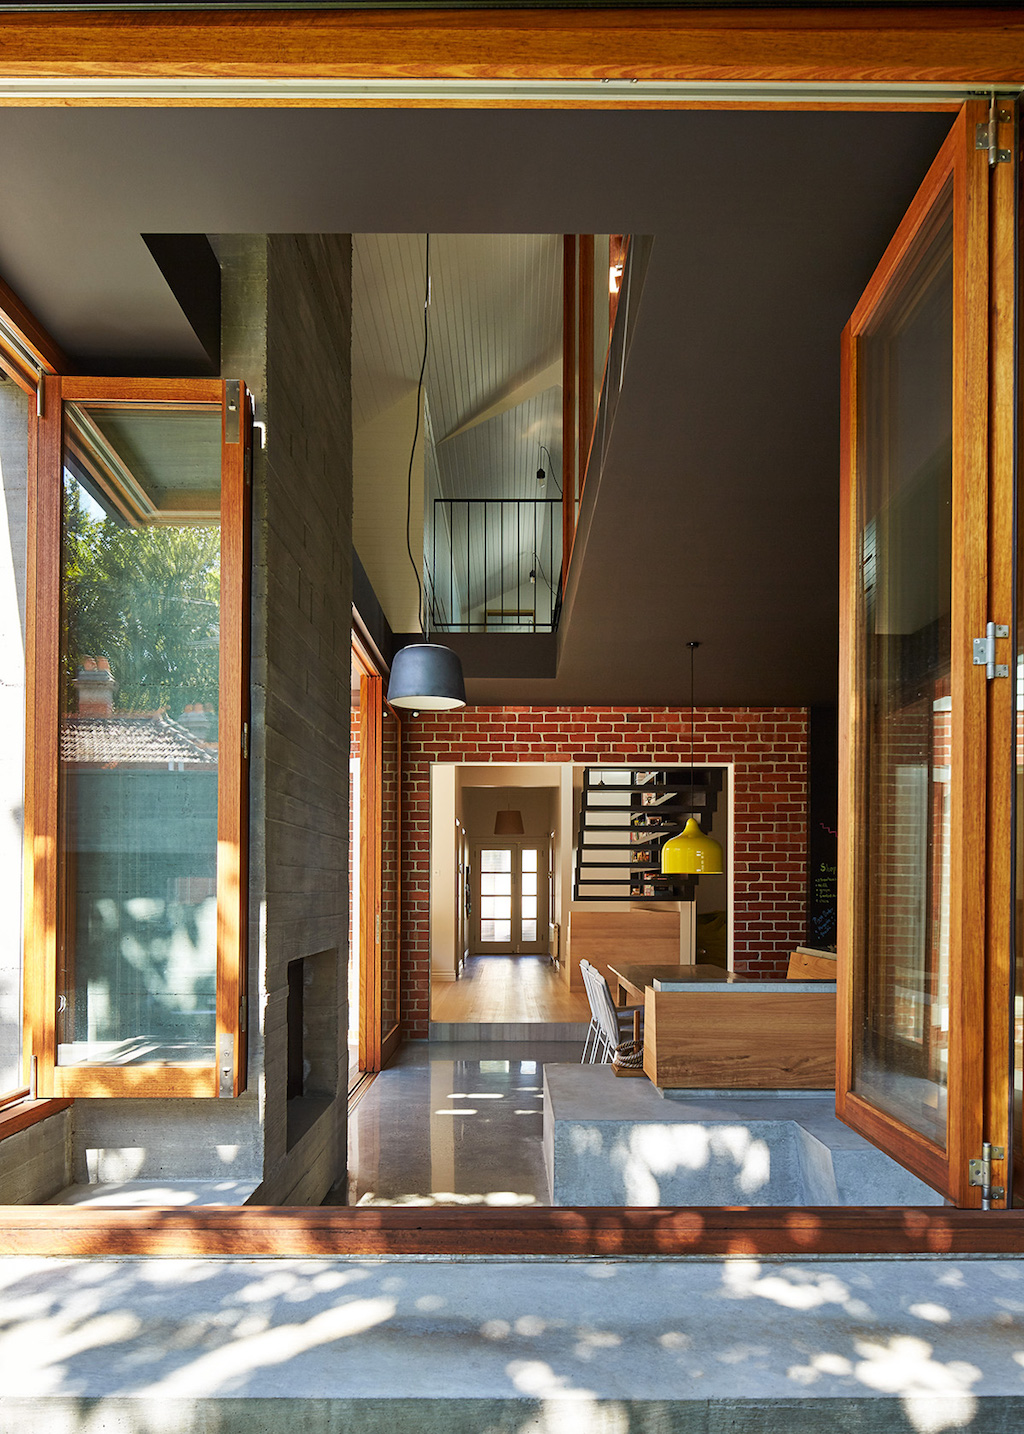 local-house-make-architecture-st-kilda-5